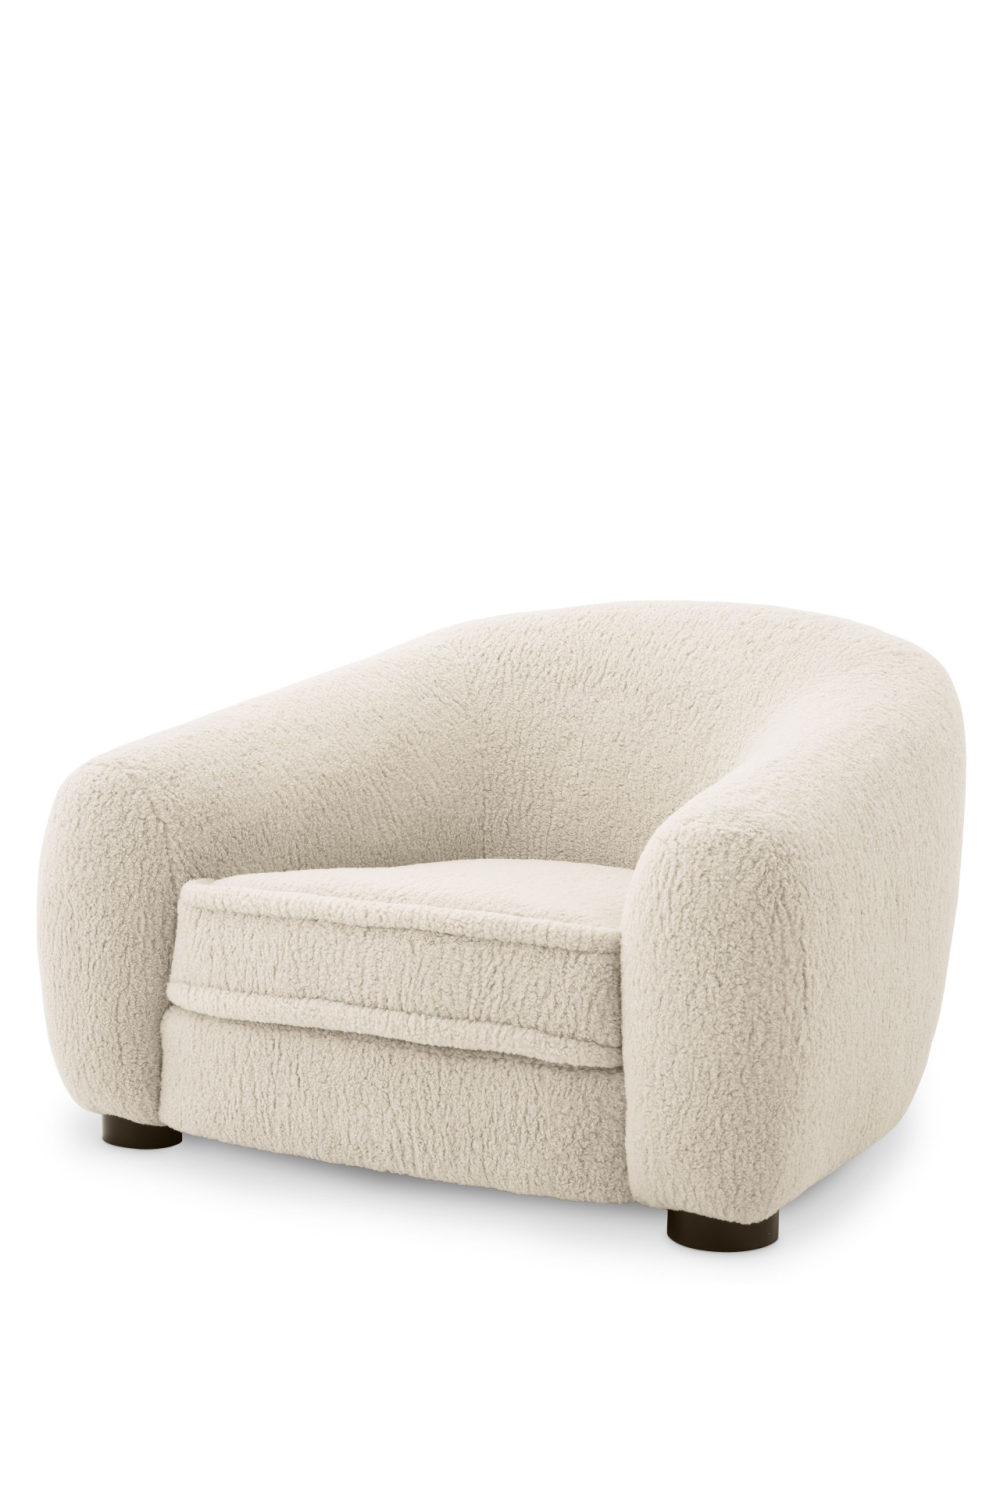 Brisbane Cream Accent Chair | Eichholtz Freud